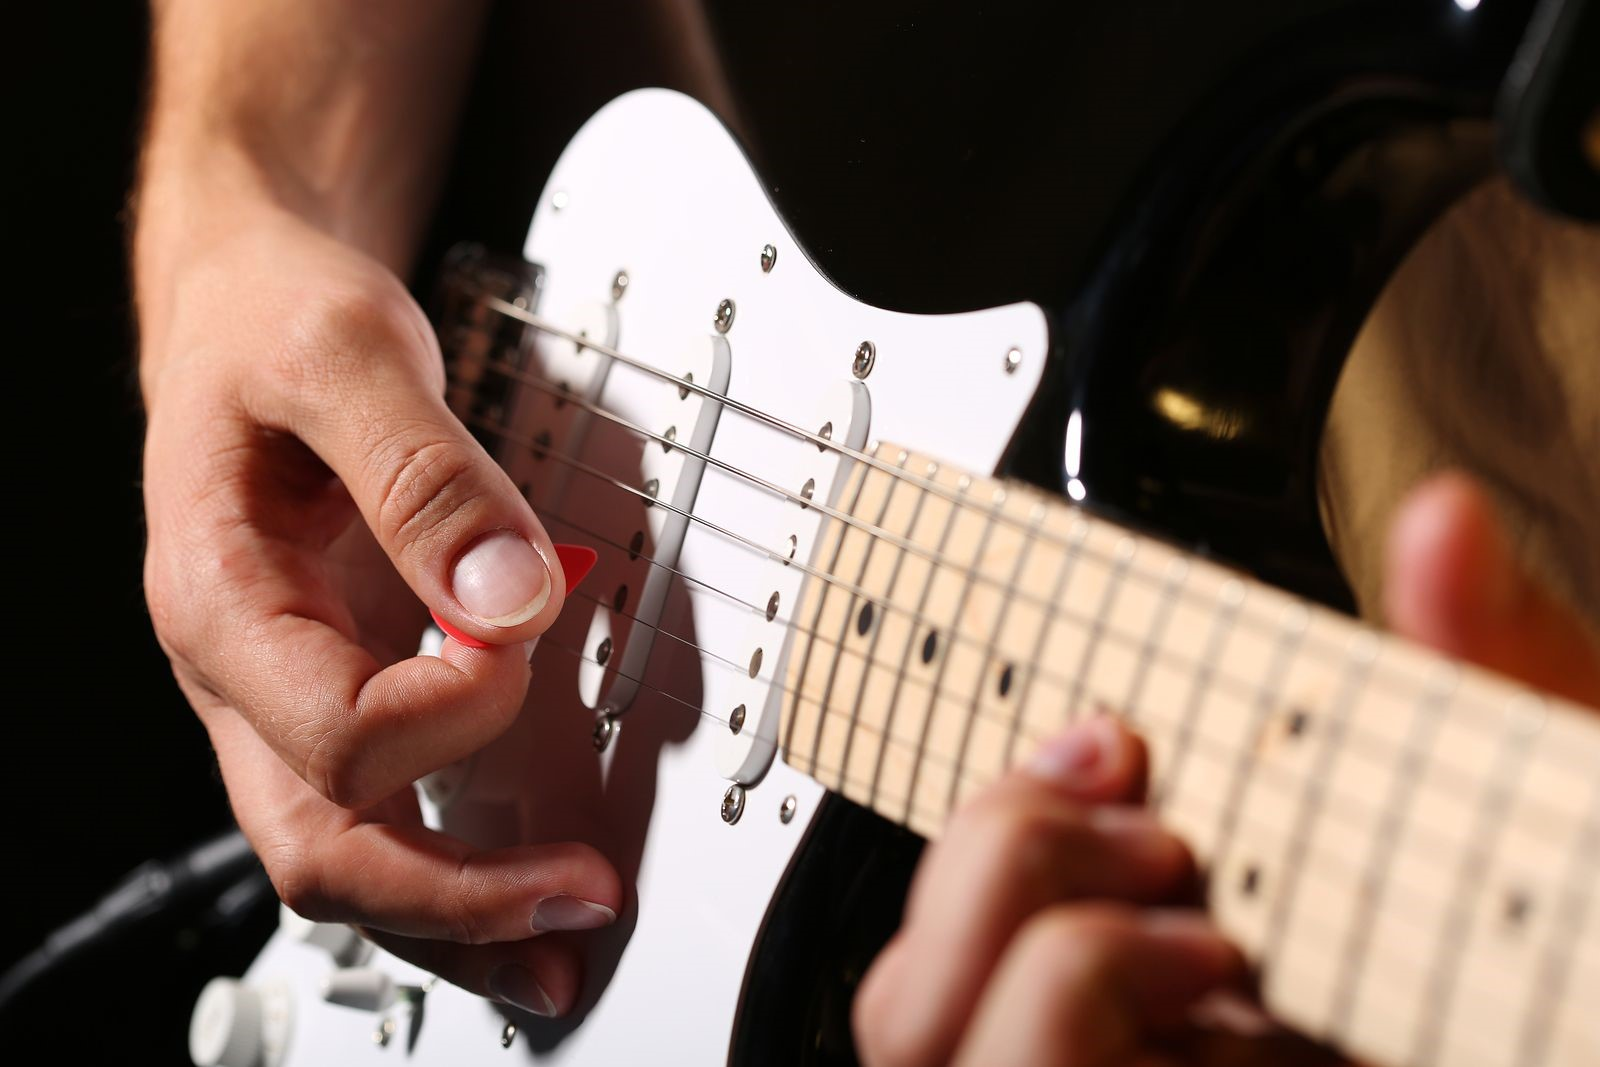 Live Music in Restaurants Will Greatly Enhance Your Dining Experience